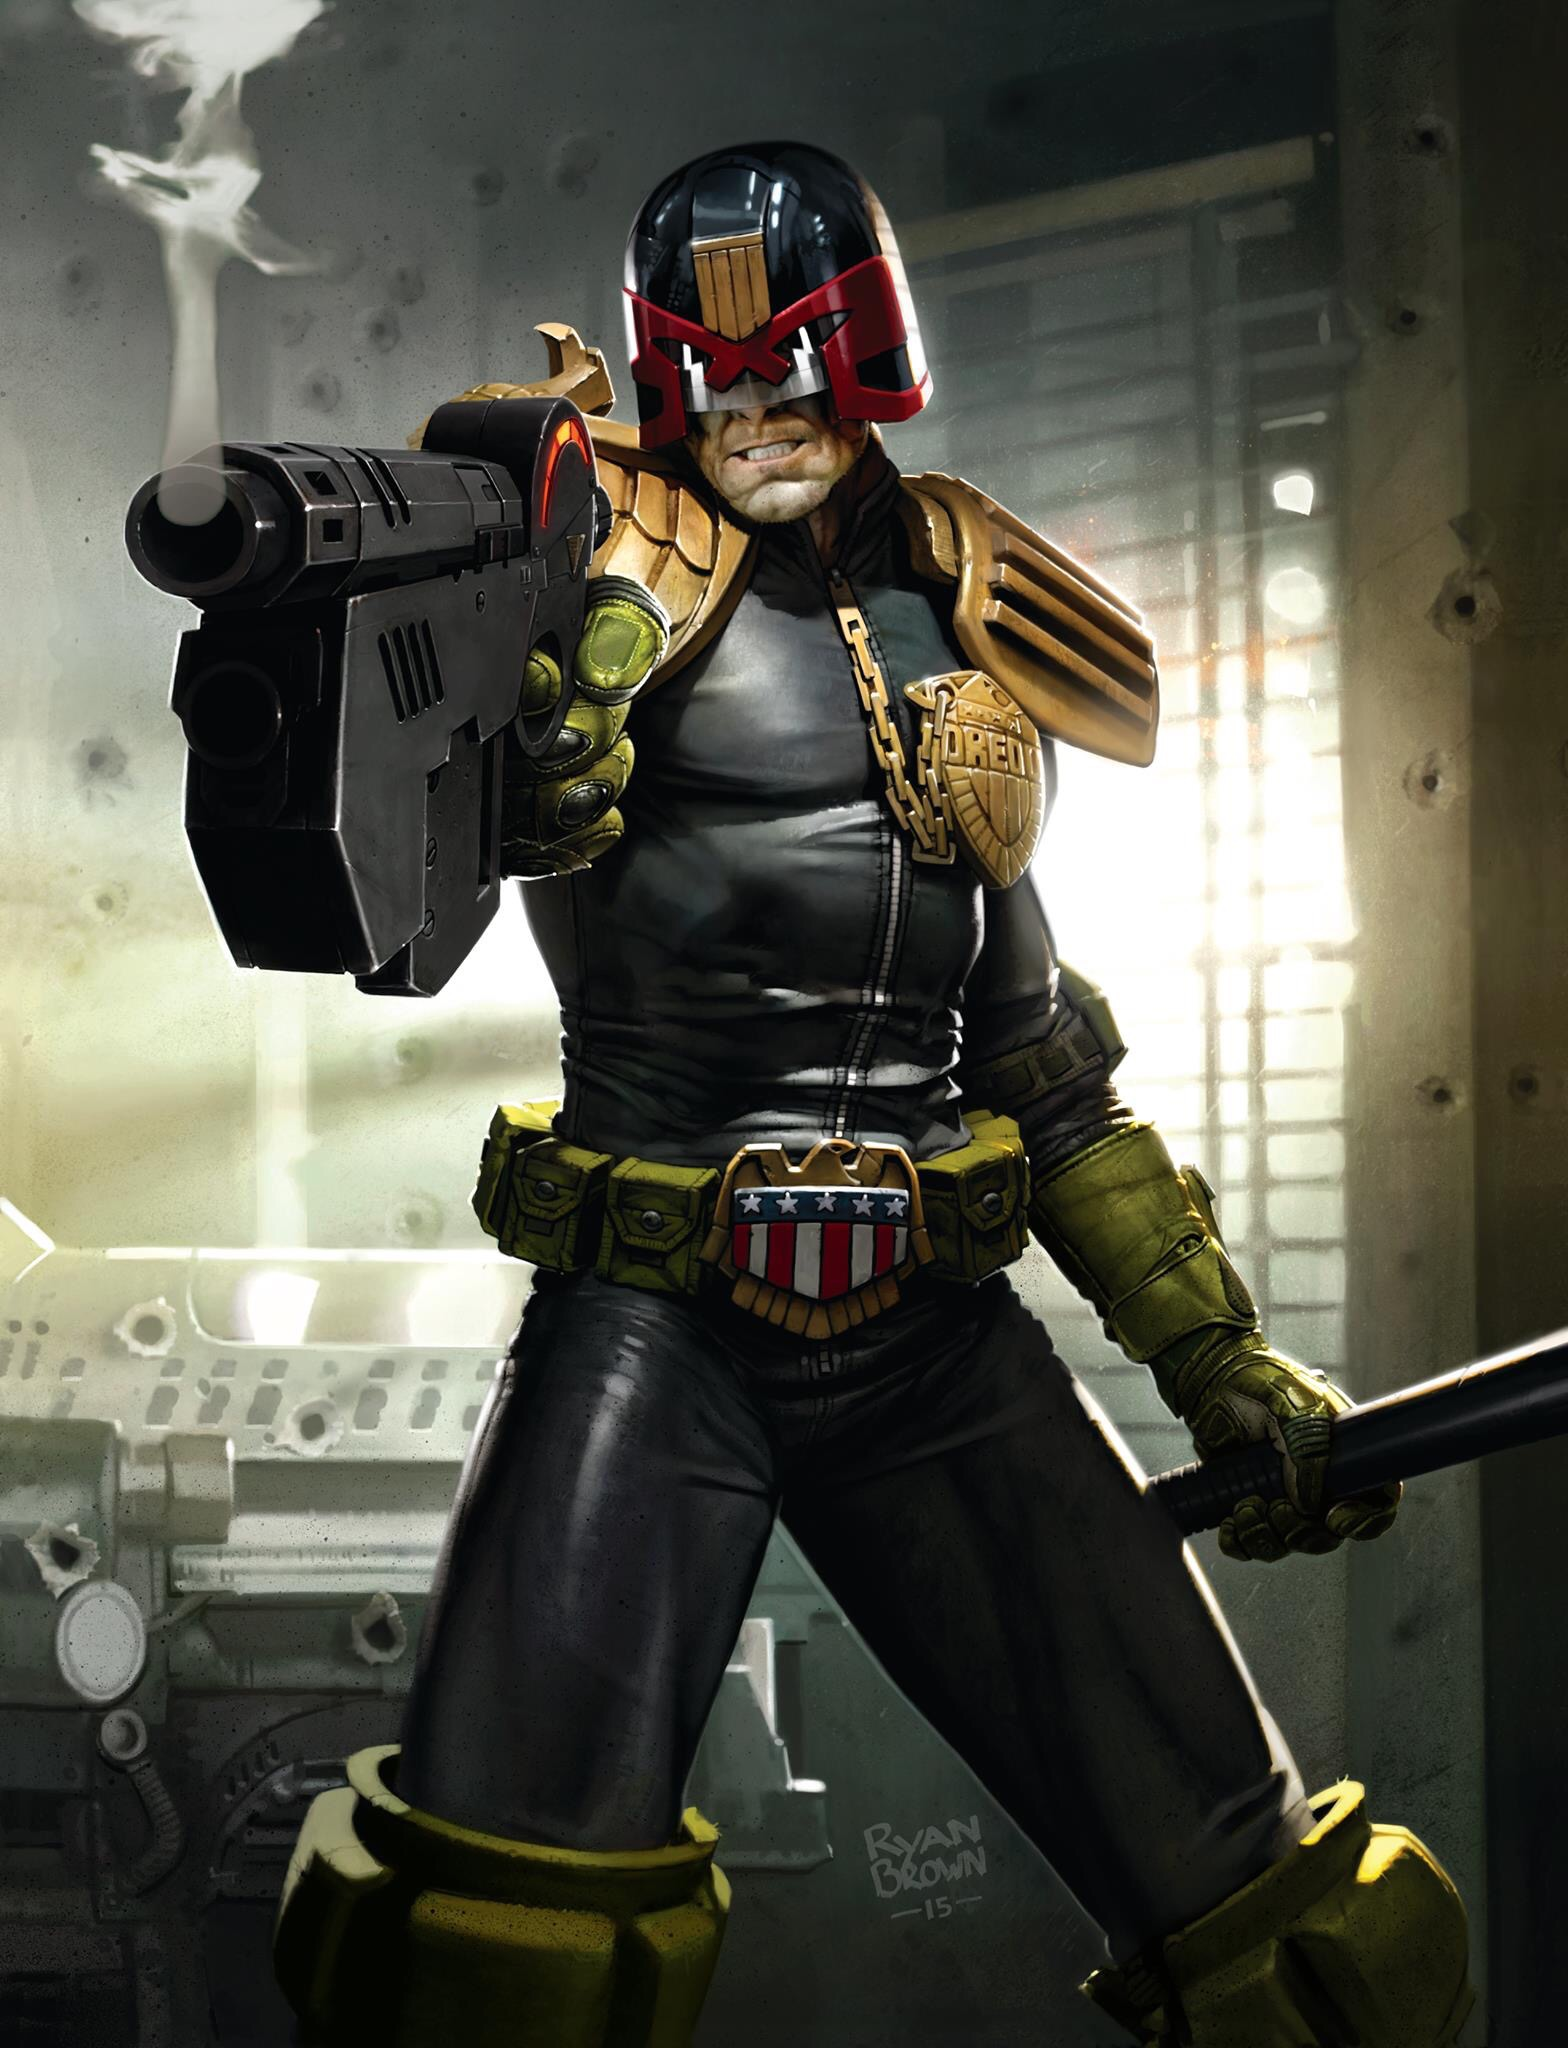 Judge Dredd: digital art by Ryan Brown